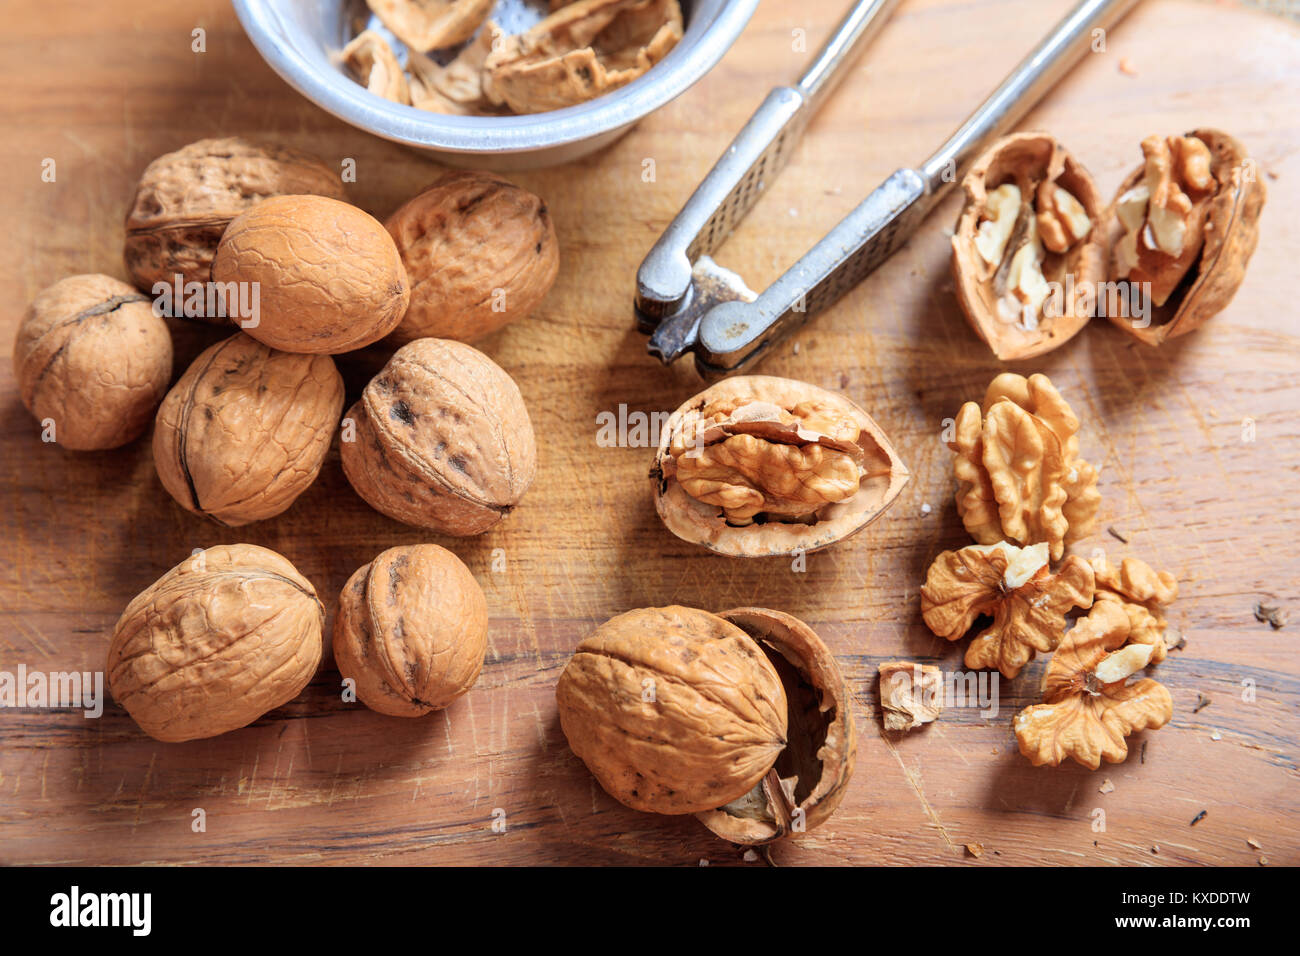 Walnuts and a nutcracker on a table Stock Photo